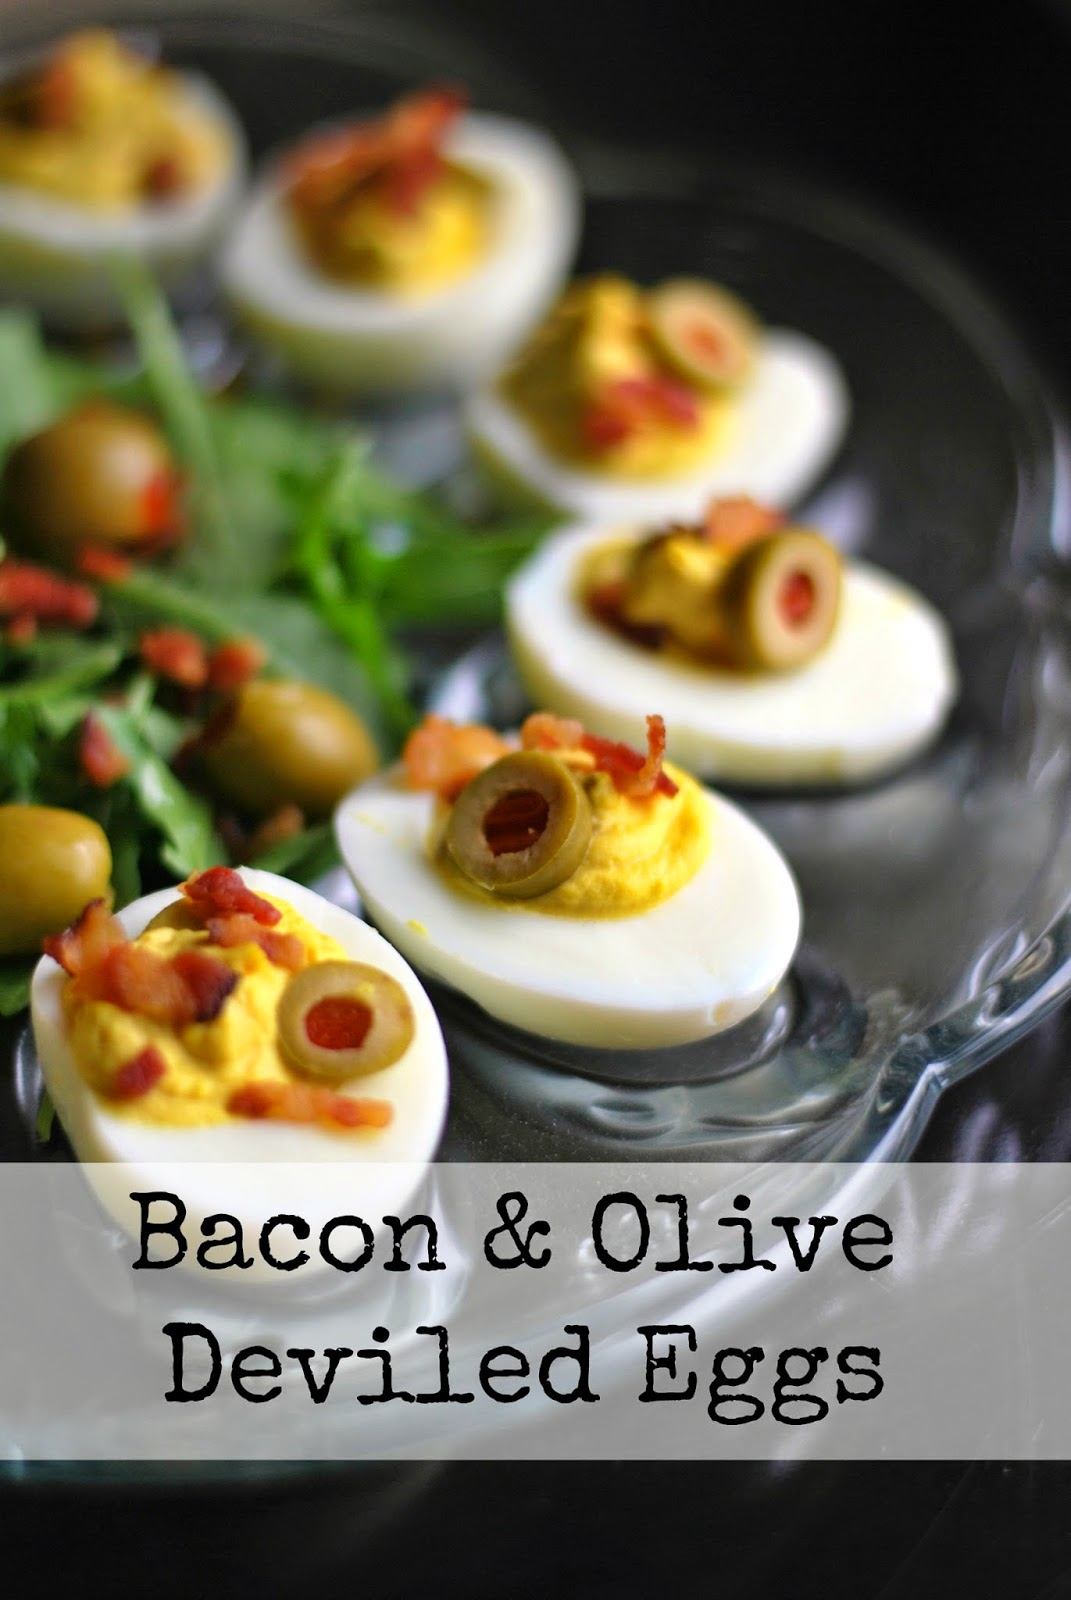 Bacon & Olive Deviled Eggs